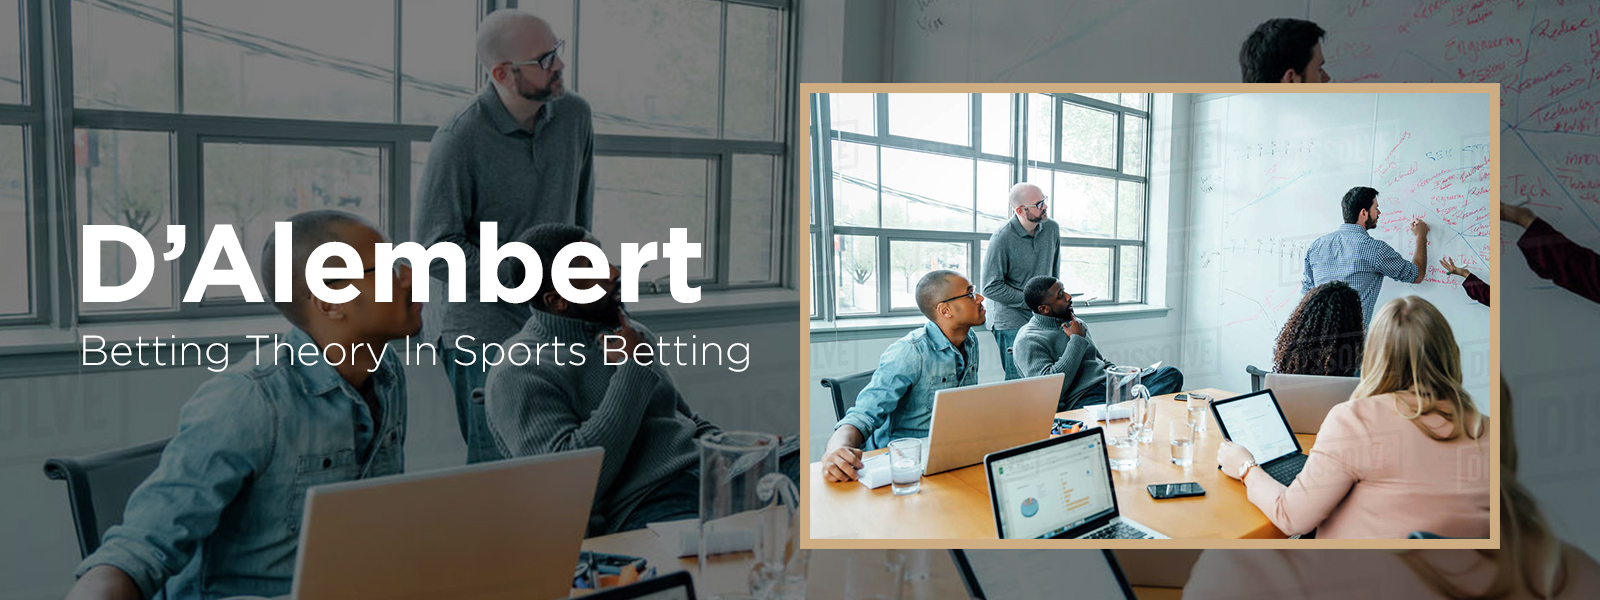 D'Alembert Betting Theory In Sports Betting